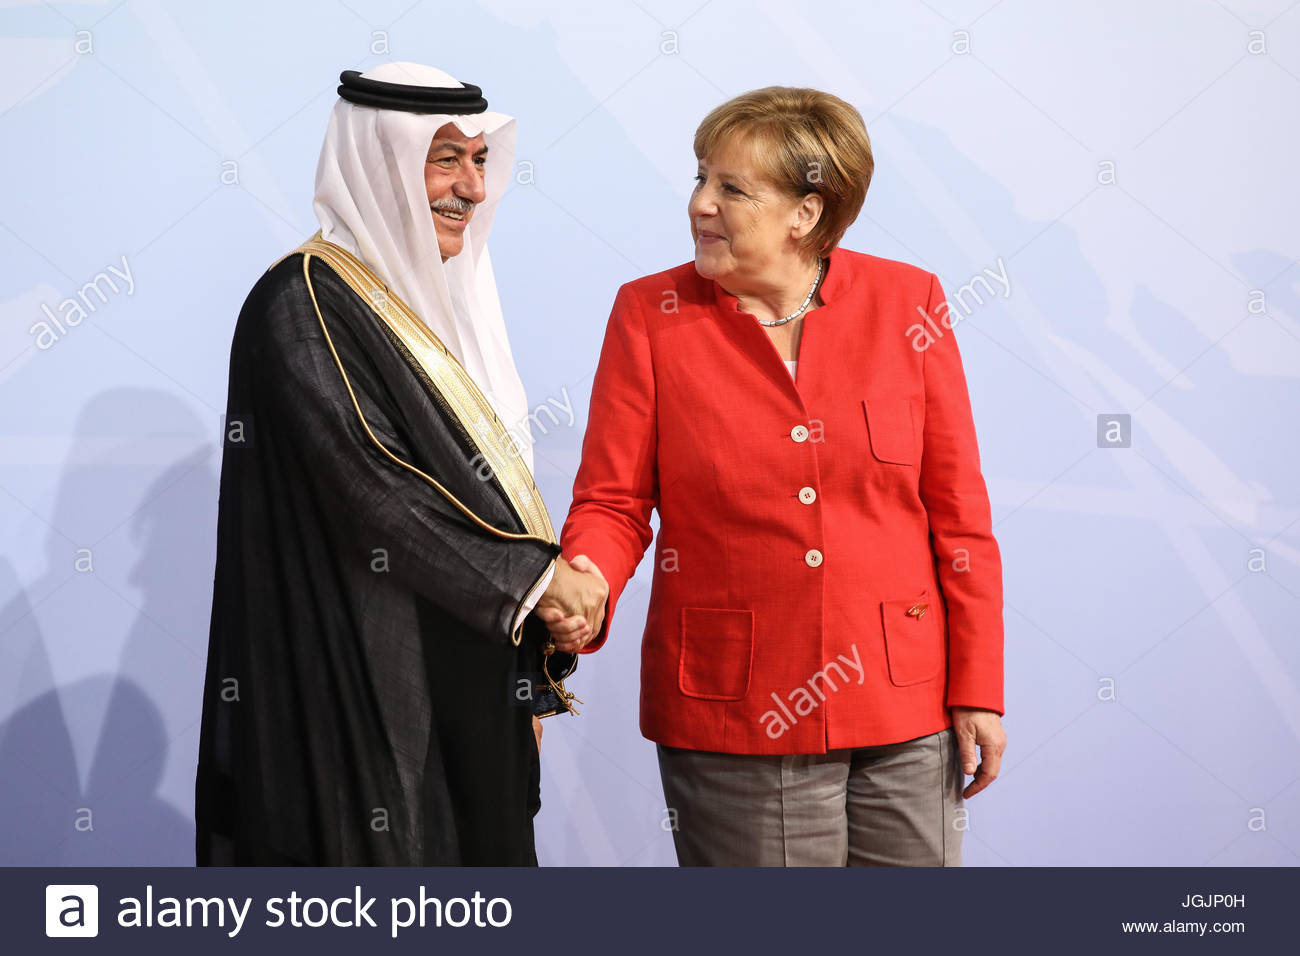 Hamburg, Germany. 7th Jul, 2017. Mohammed al-Dschadan, finance minister of Saudi Arabia welcomes by German chancellor - Stock Image